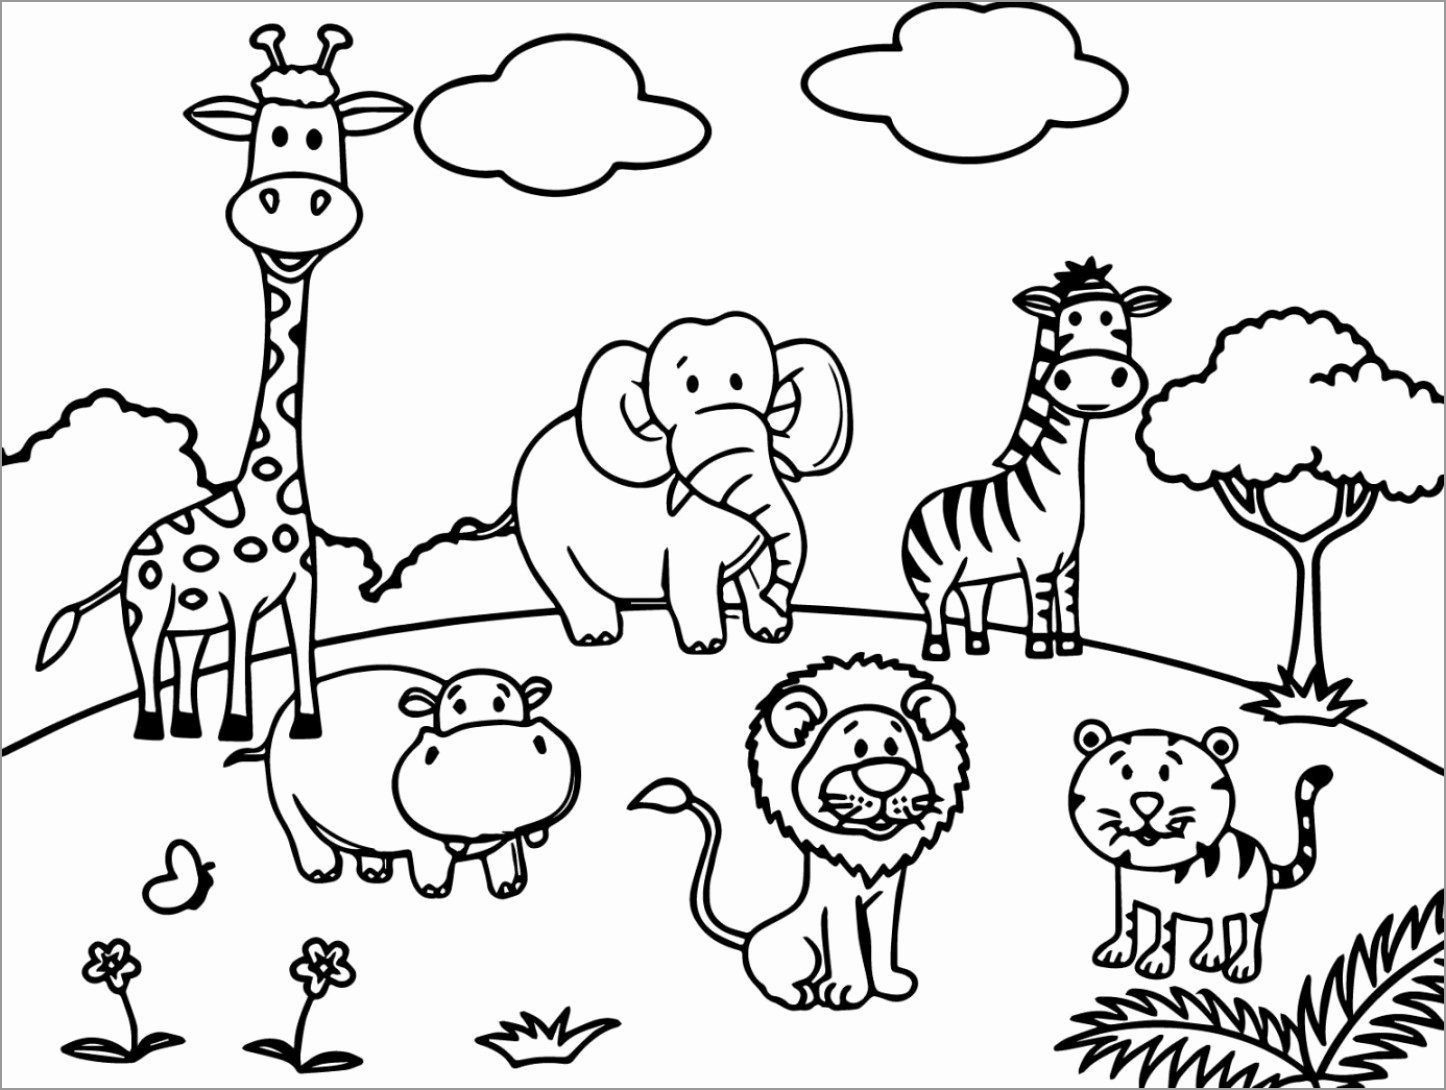 Zoo Animals Coloring Page for Kids